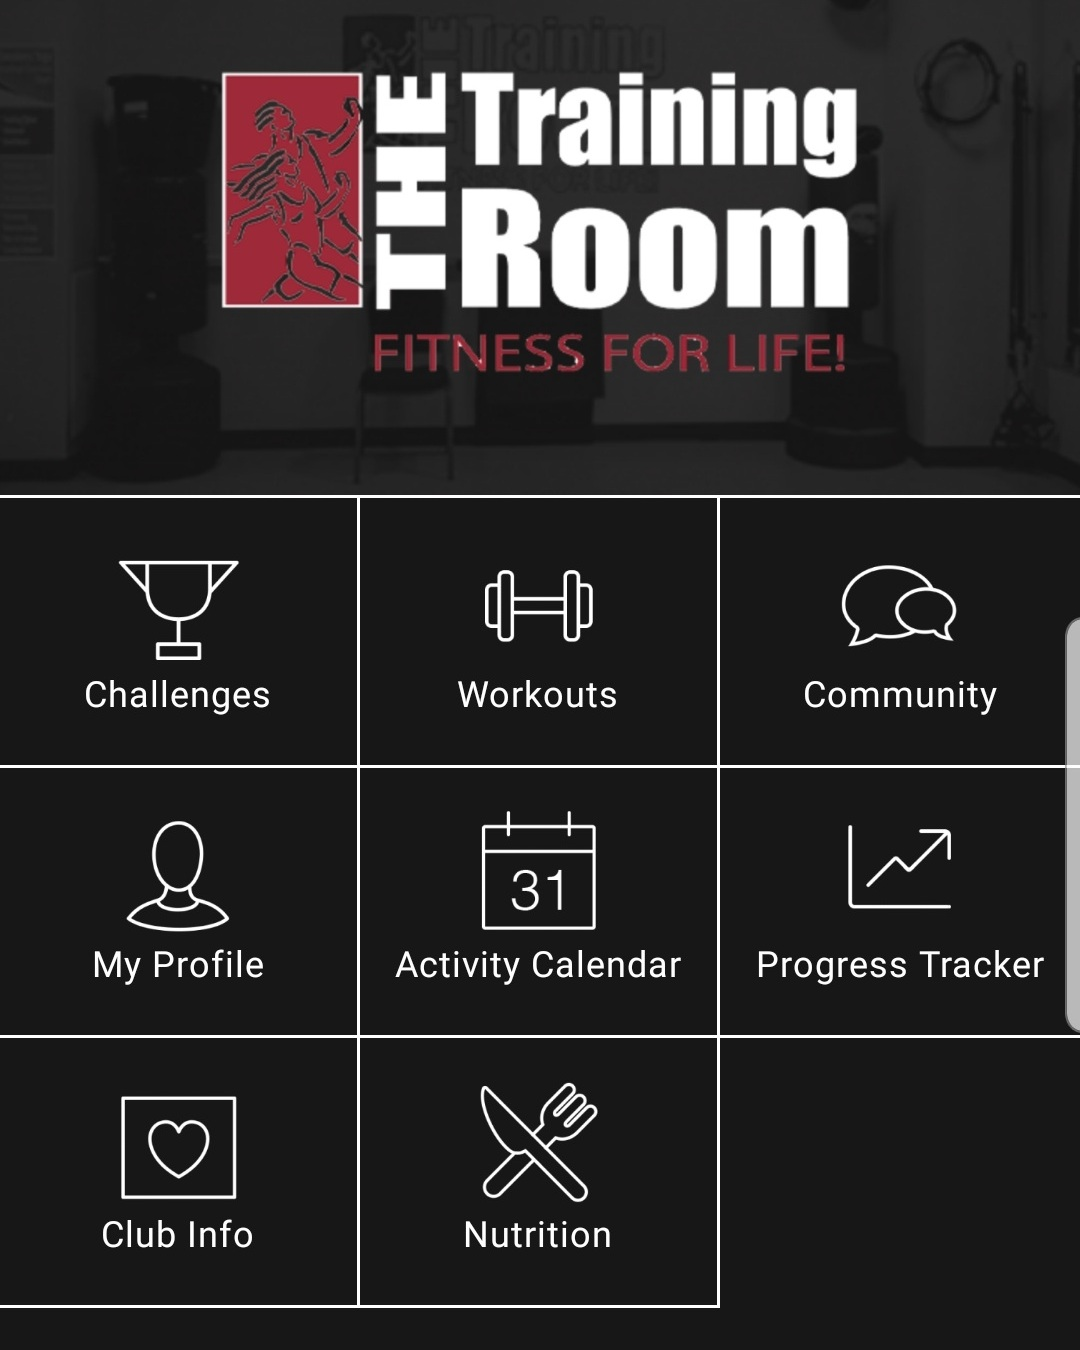 Personalized Wellness - On-line support to encourage you on your fitness journey.Includes workout plans, challenges, progress tracker, and nutritional support.